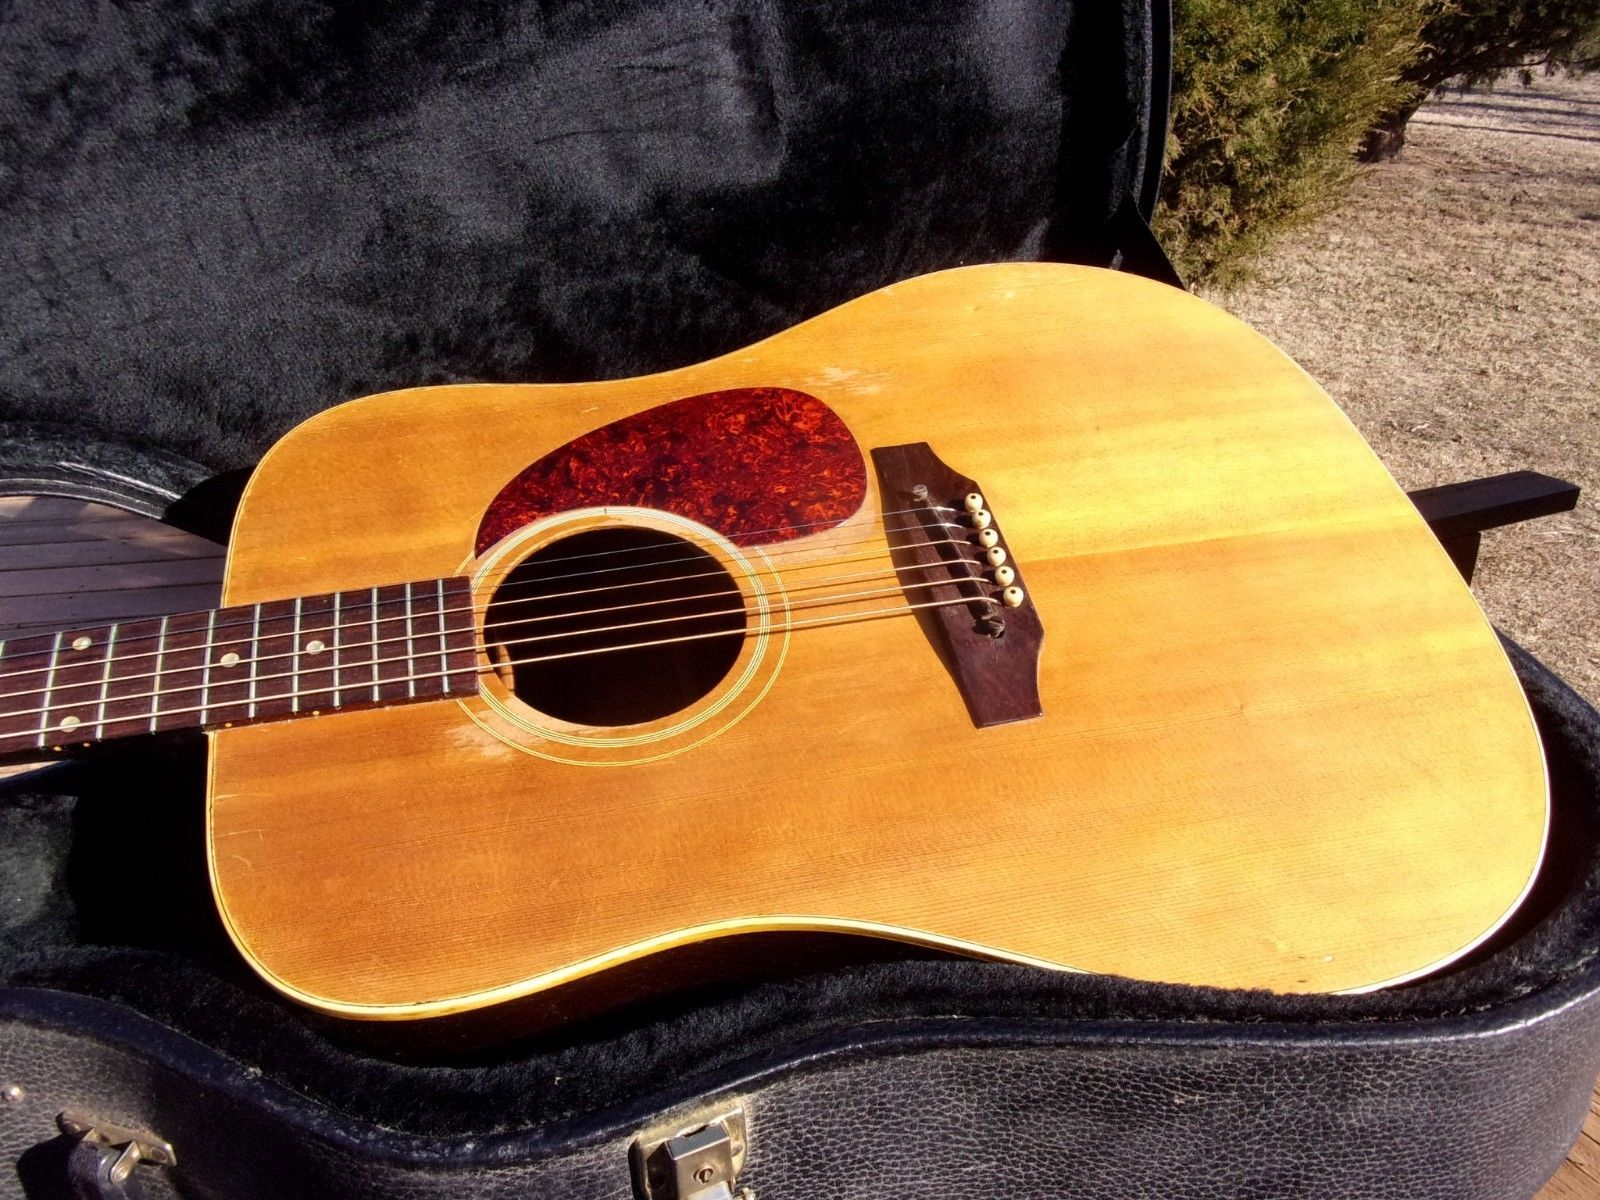 #guitar 1968/69 GIBSON J-45 GUITAR, GOOD CONDITION, IN HARD SHELL CASE please retweet